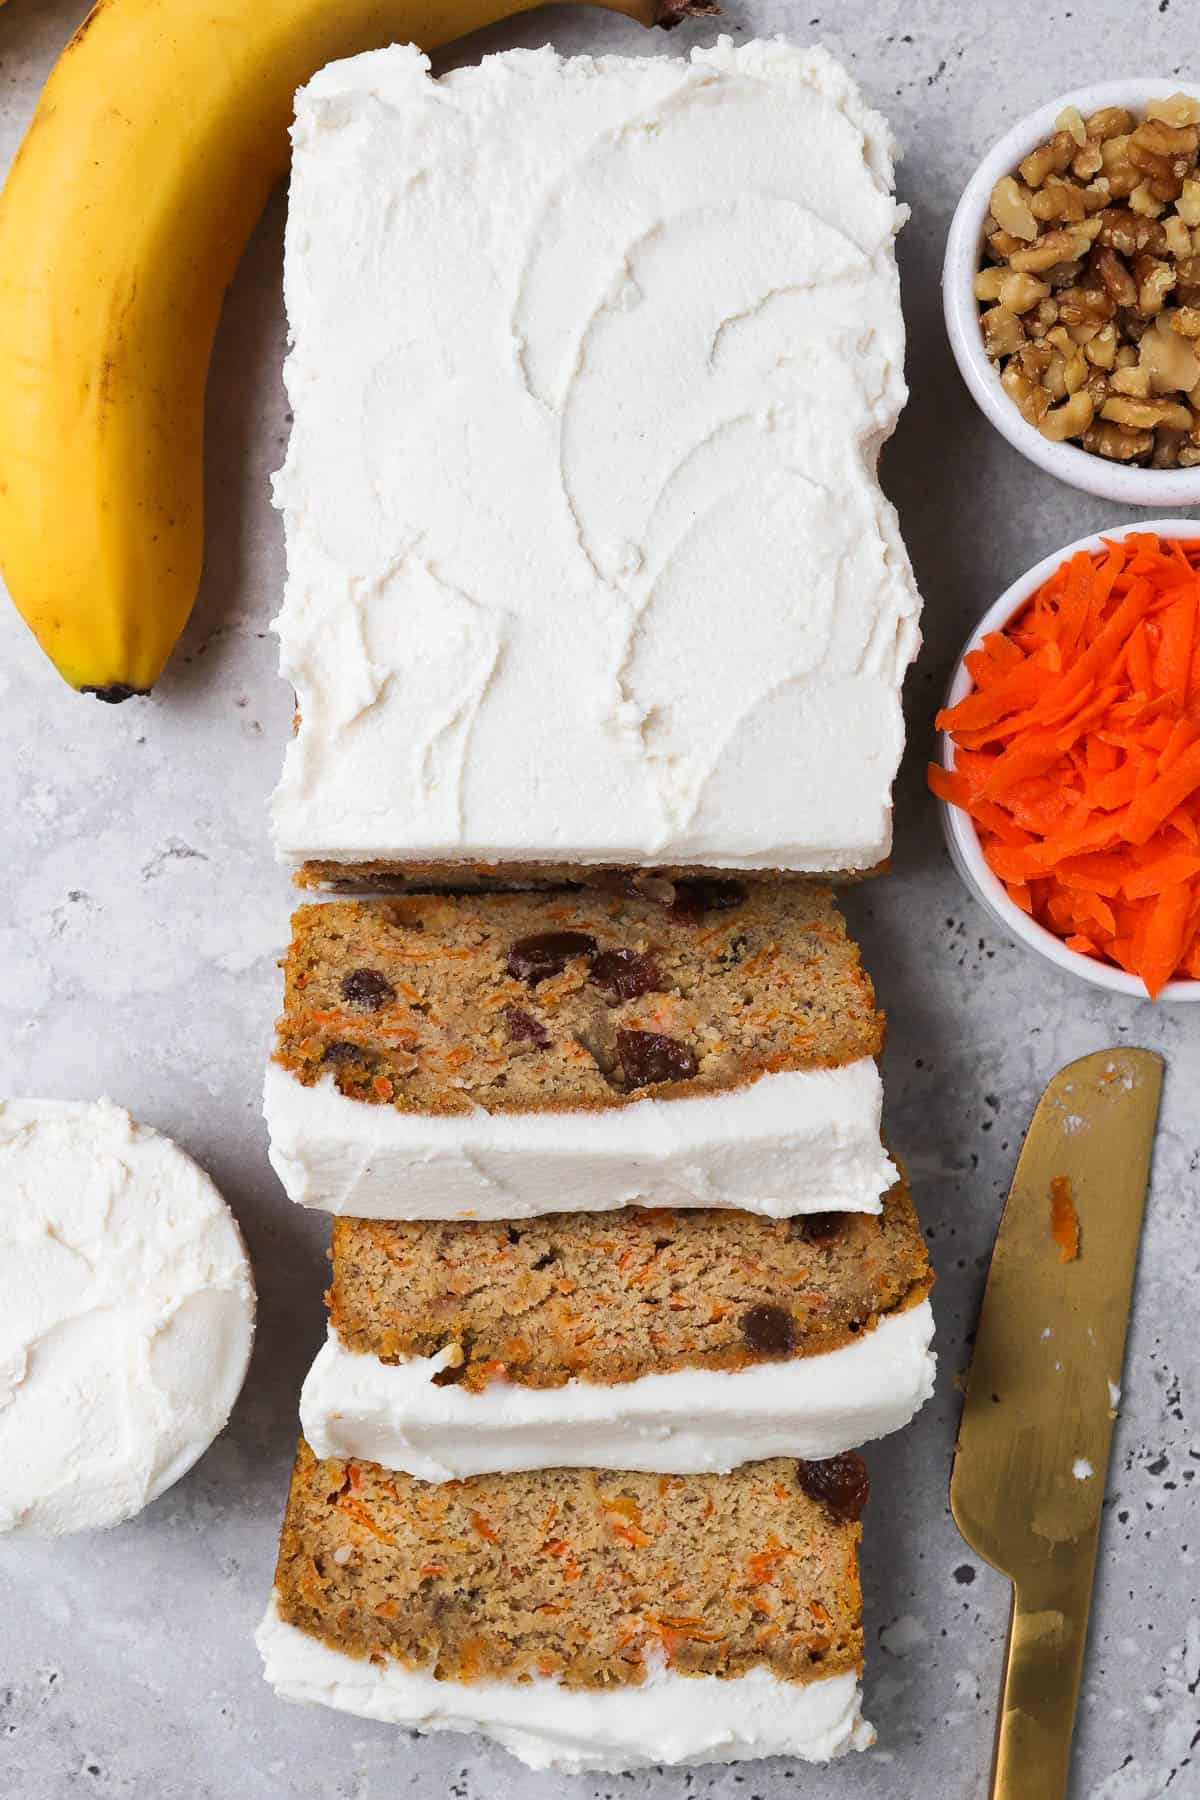 Bread topped with frosting cut into there slices at front. Small dish of grated carrot, walnuts, frosting, banana and gold knife on the side for garnish.